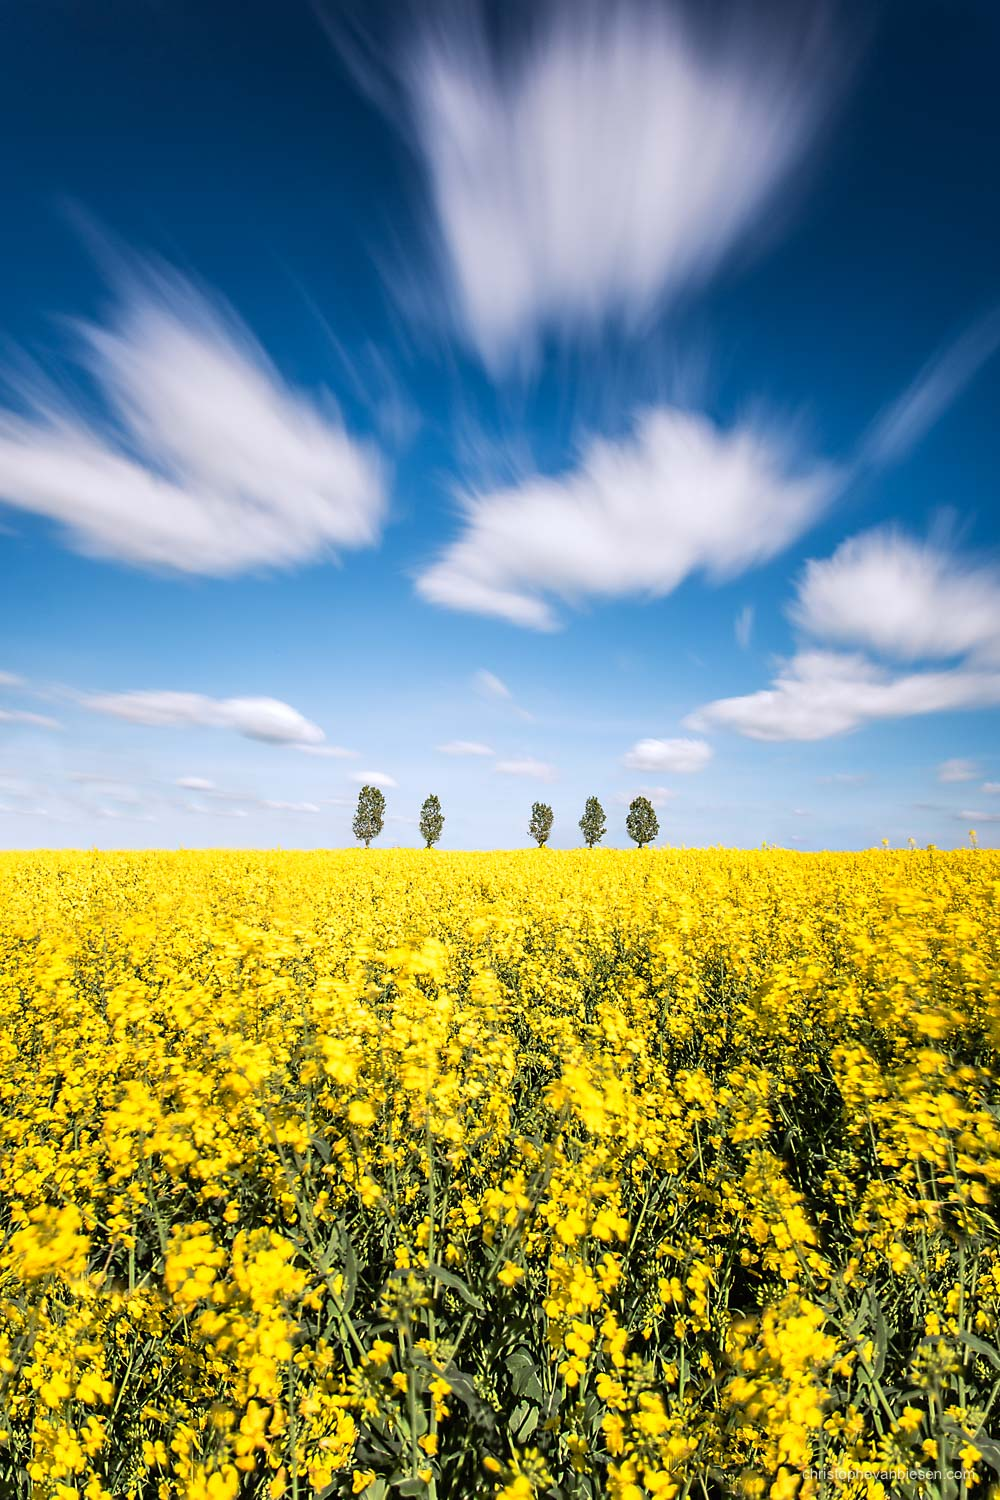 Spring in Luxembourg - Rapeseed fields in Spring in Luxembourg - Demeter's Gift